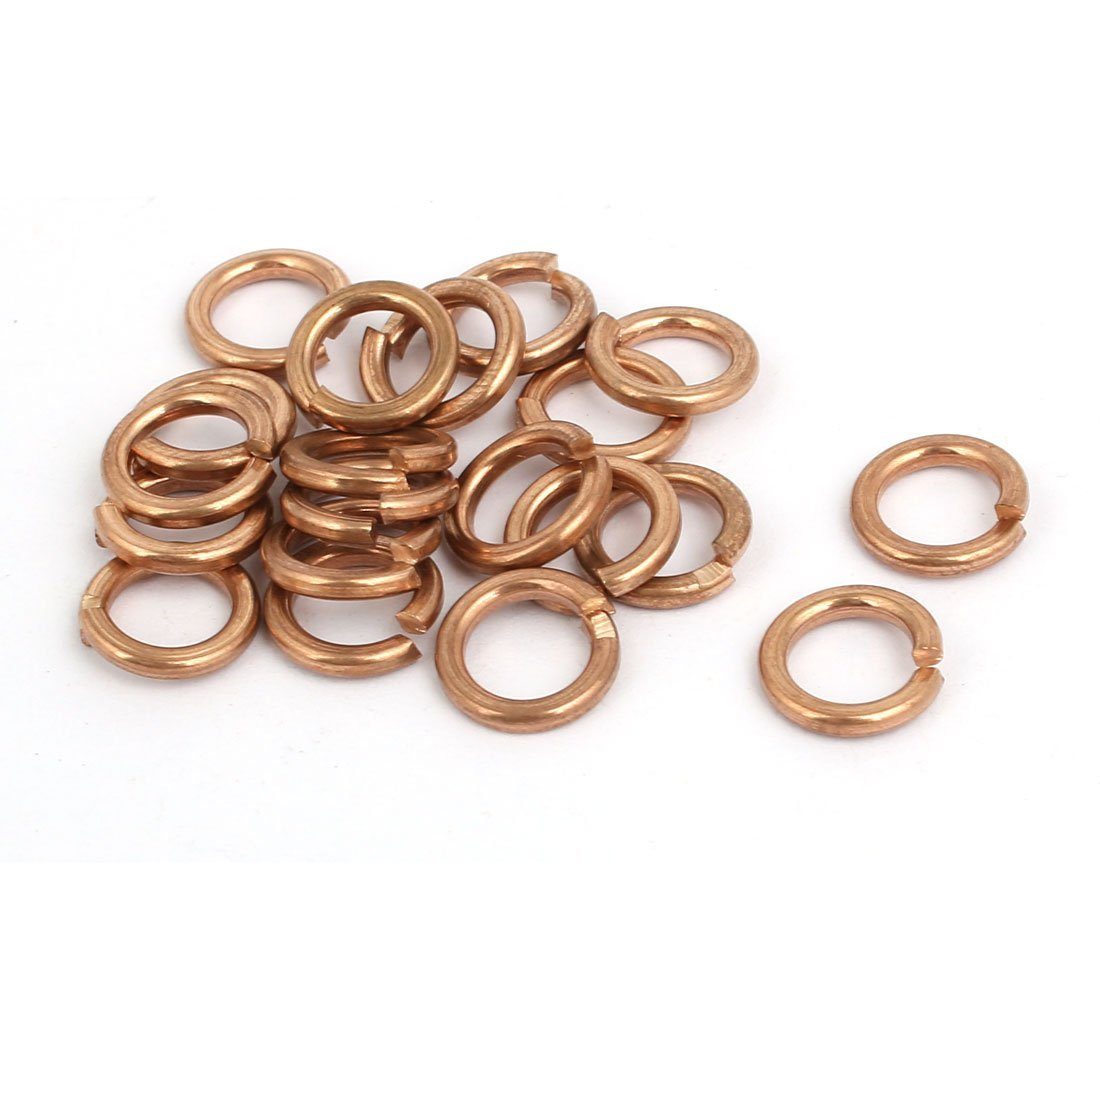 uxcell 6mm Inner Diameter Split Lock Spring Washer Gasket Copper Tone 20pcs